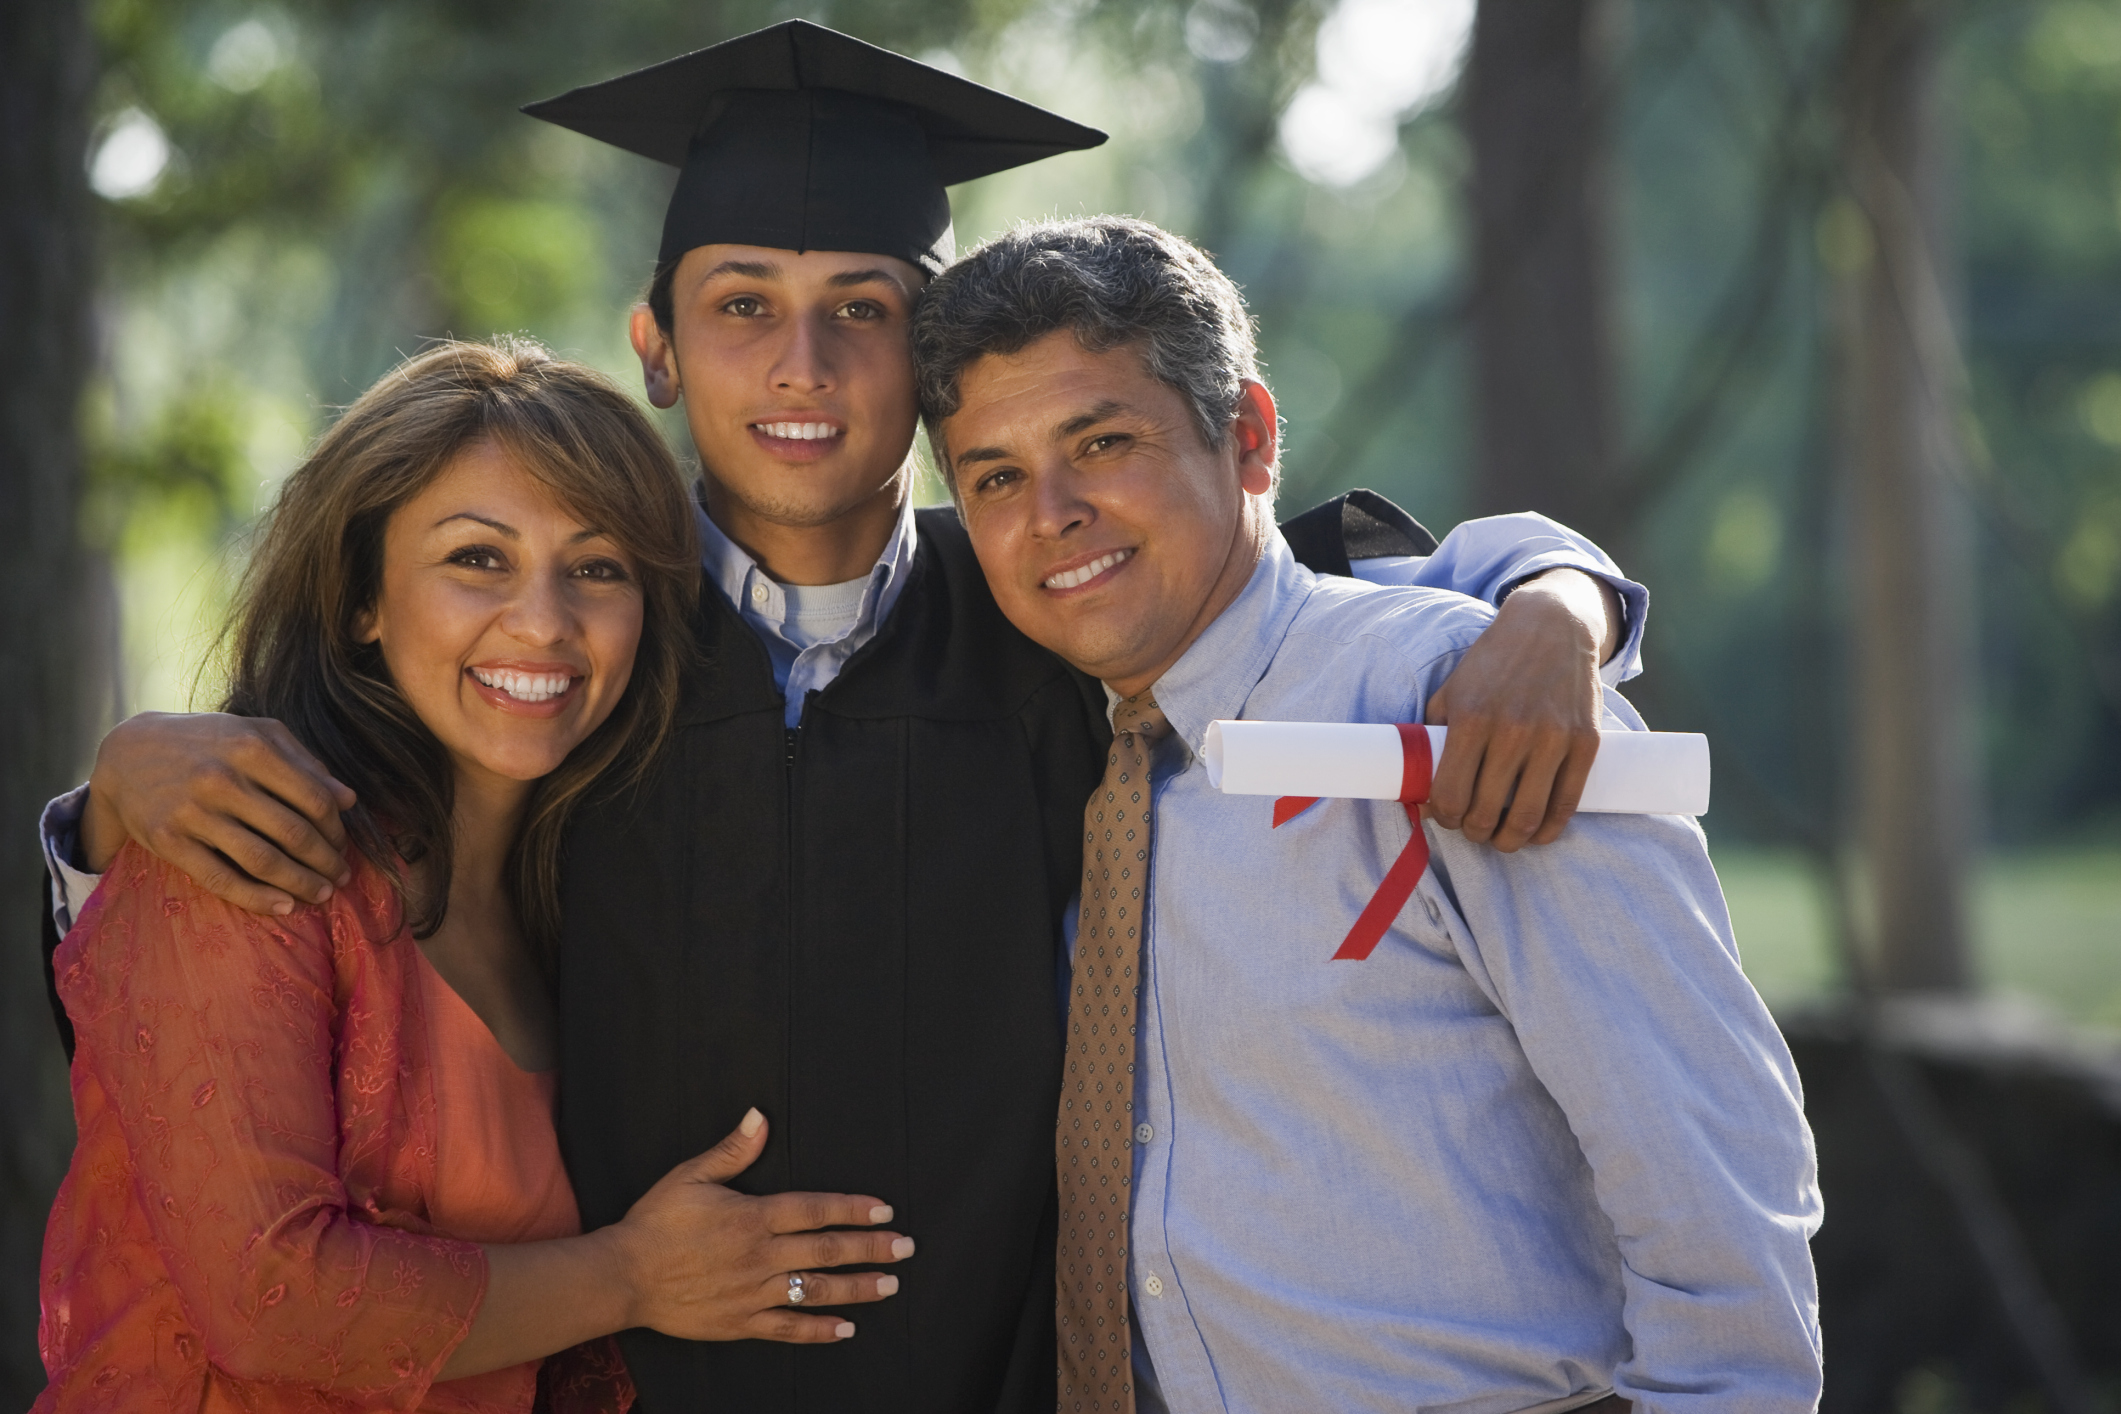 Proper Attire for High School Graduation | LIVESTRONG.COM